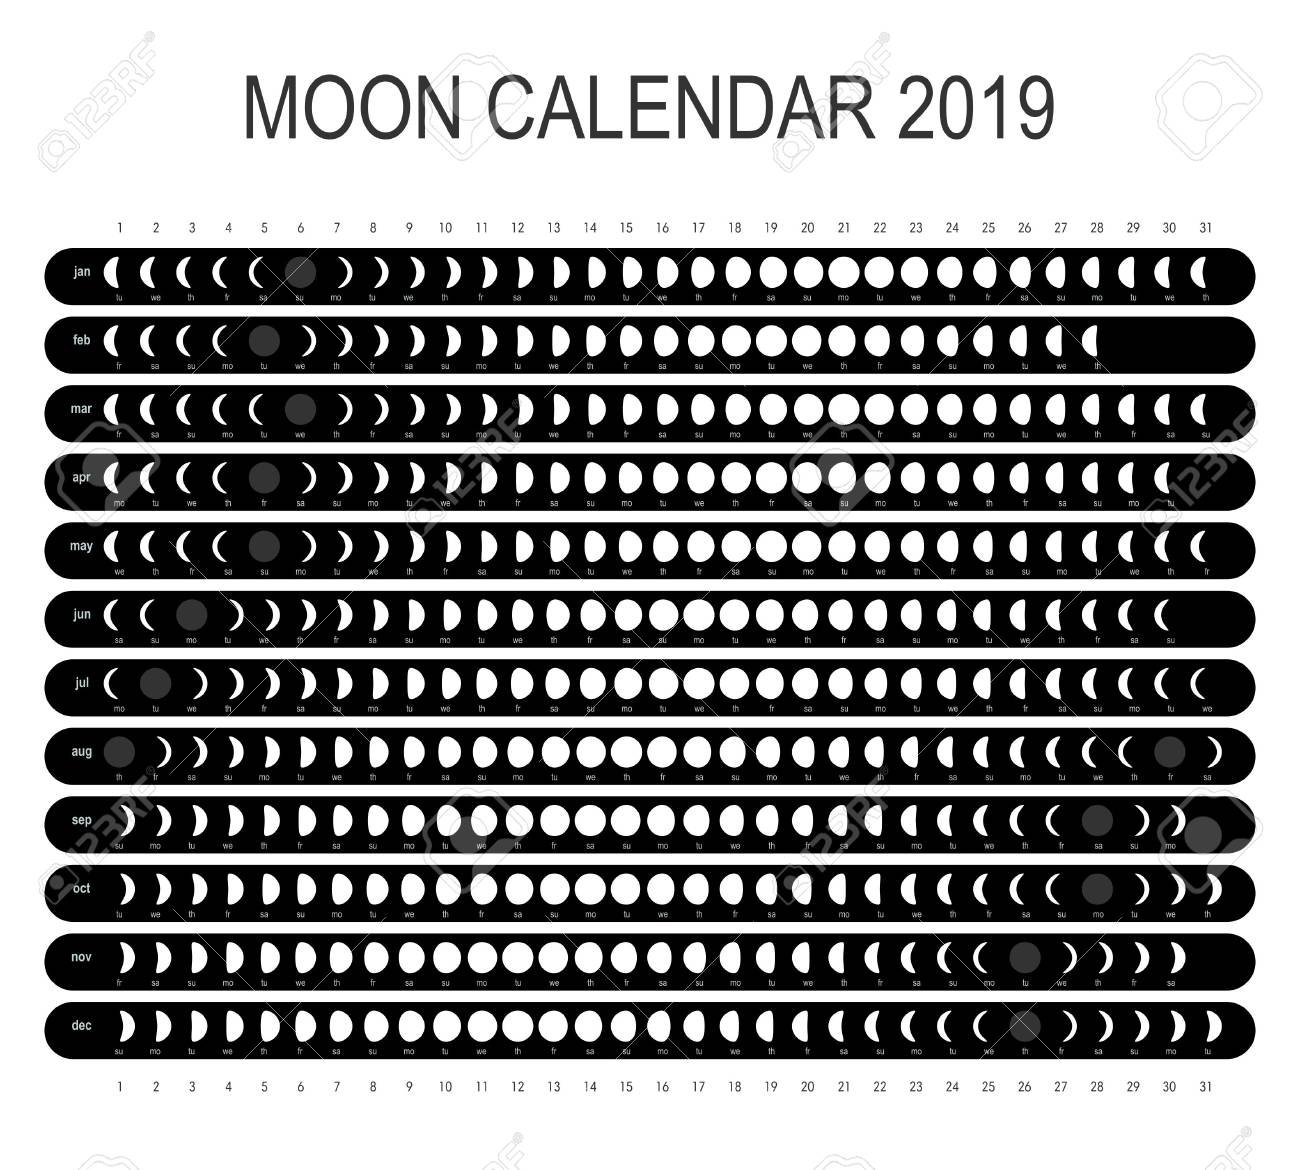 Moon Calendar 2019 Royalty Free Cliparts, Vectors, And Stock Calendar 2019 Lunar